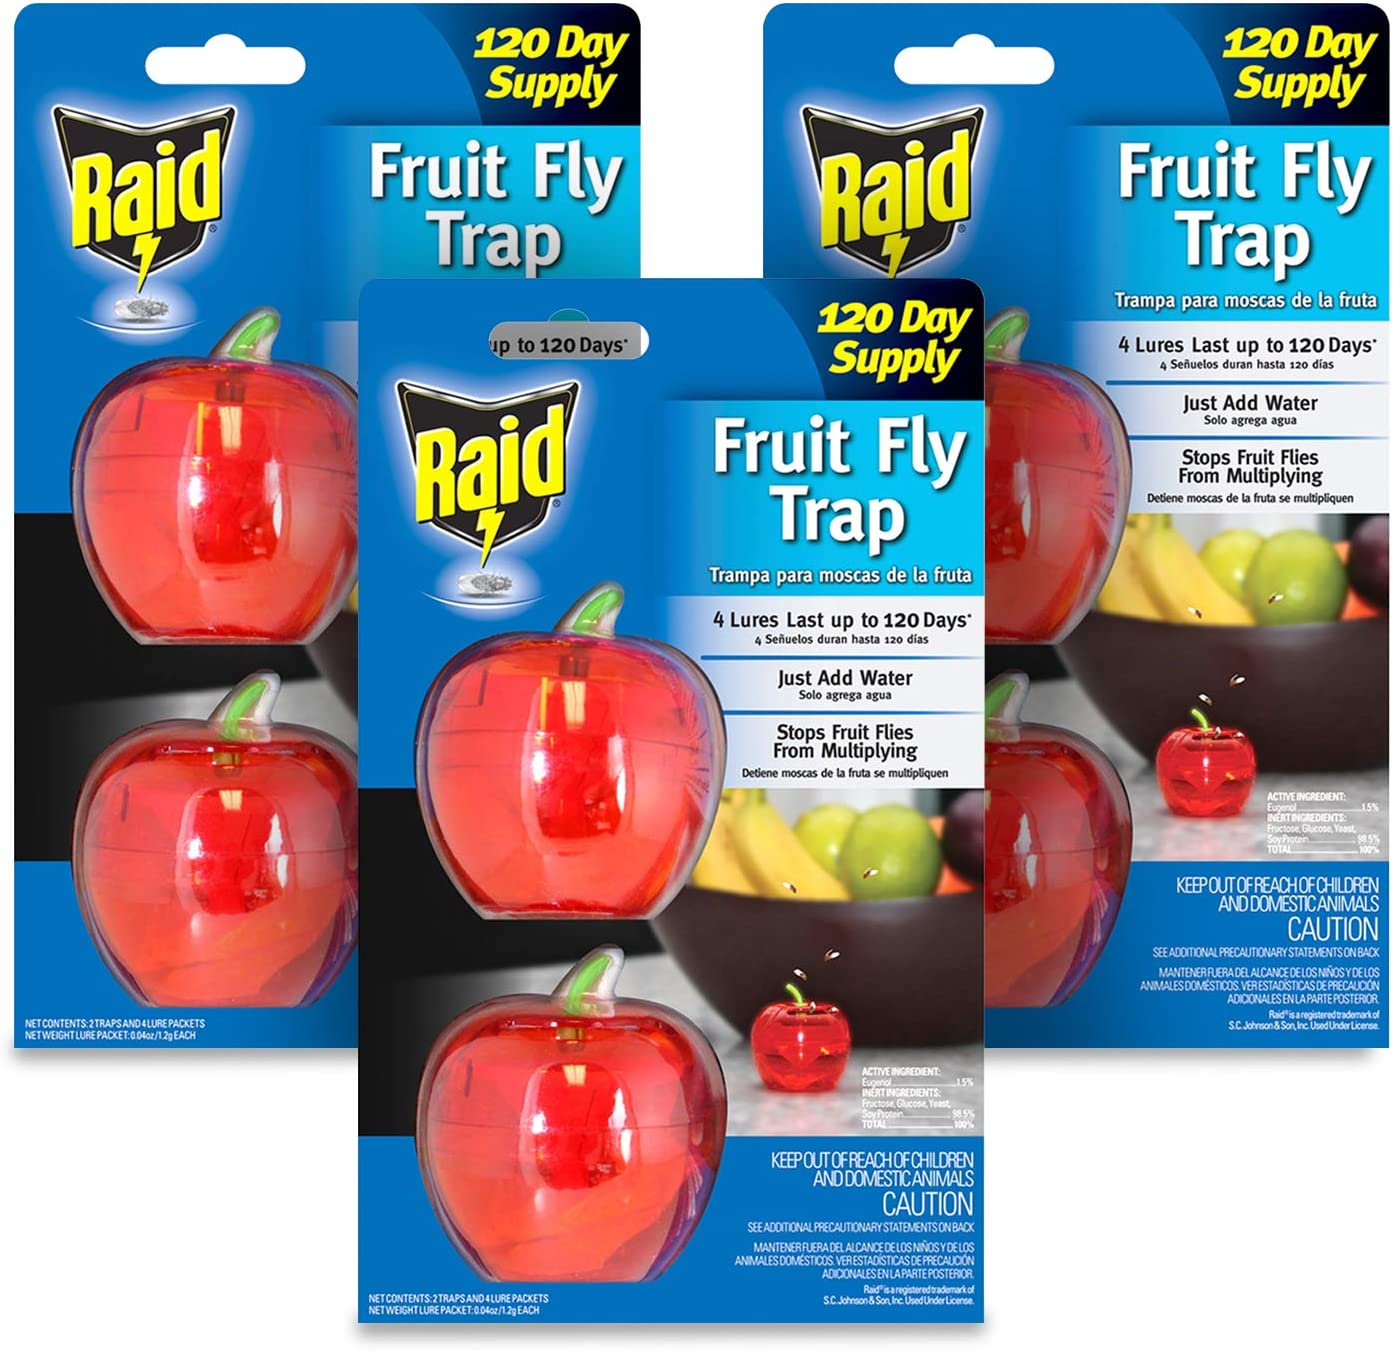 Raid Fruit Fly Trap Bundle, Set of 3 2-Pack Apple Fruit Fly Catcher Indoor Trap, 360-Day Supply of Fruit Fly Traps for Kitchen & Dining Areas, Reusable Gnat Traps w/Food-Based Lure for Fruit Flies